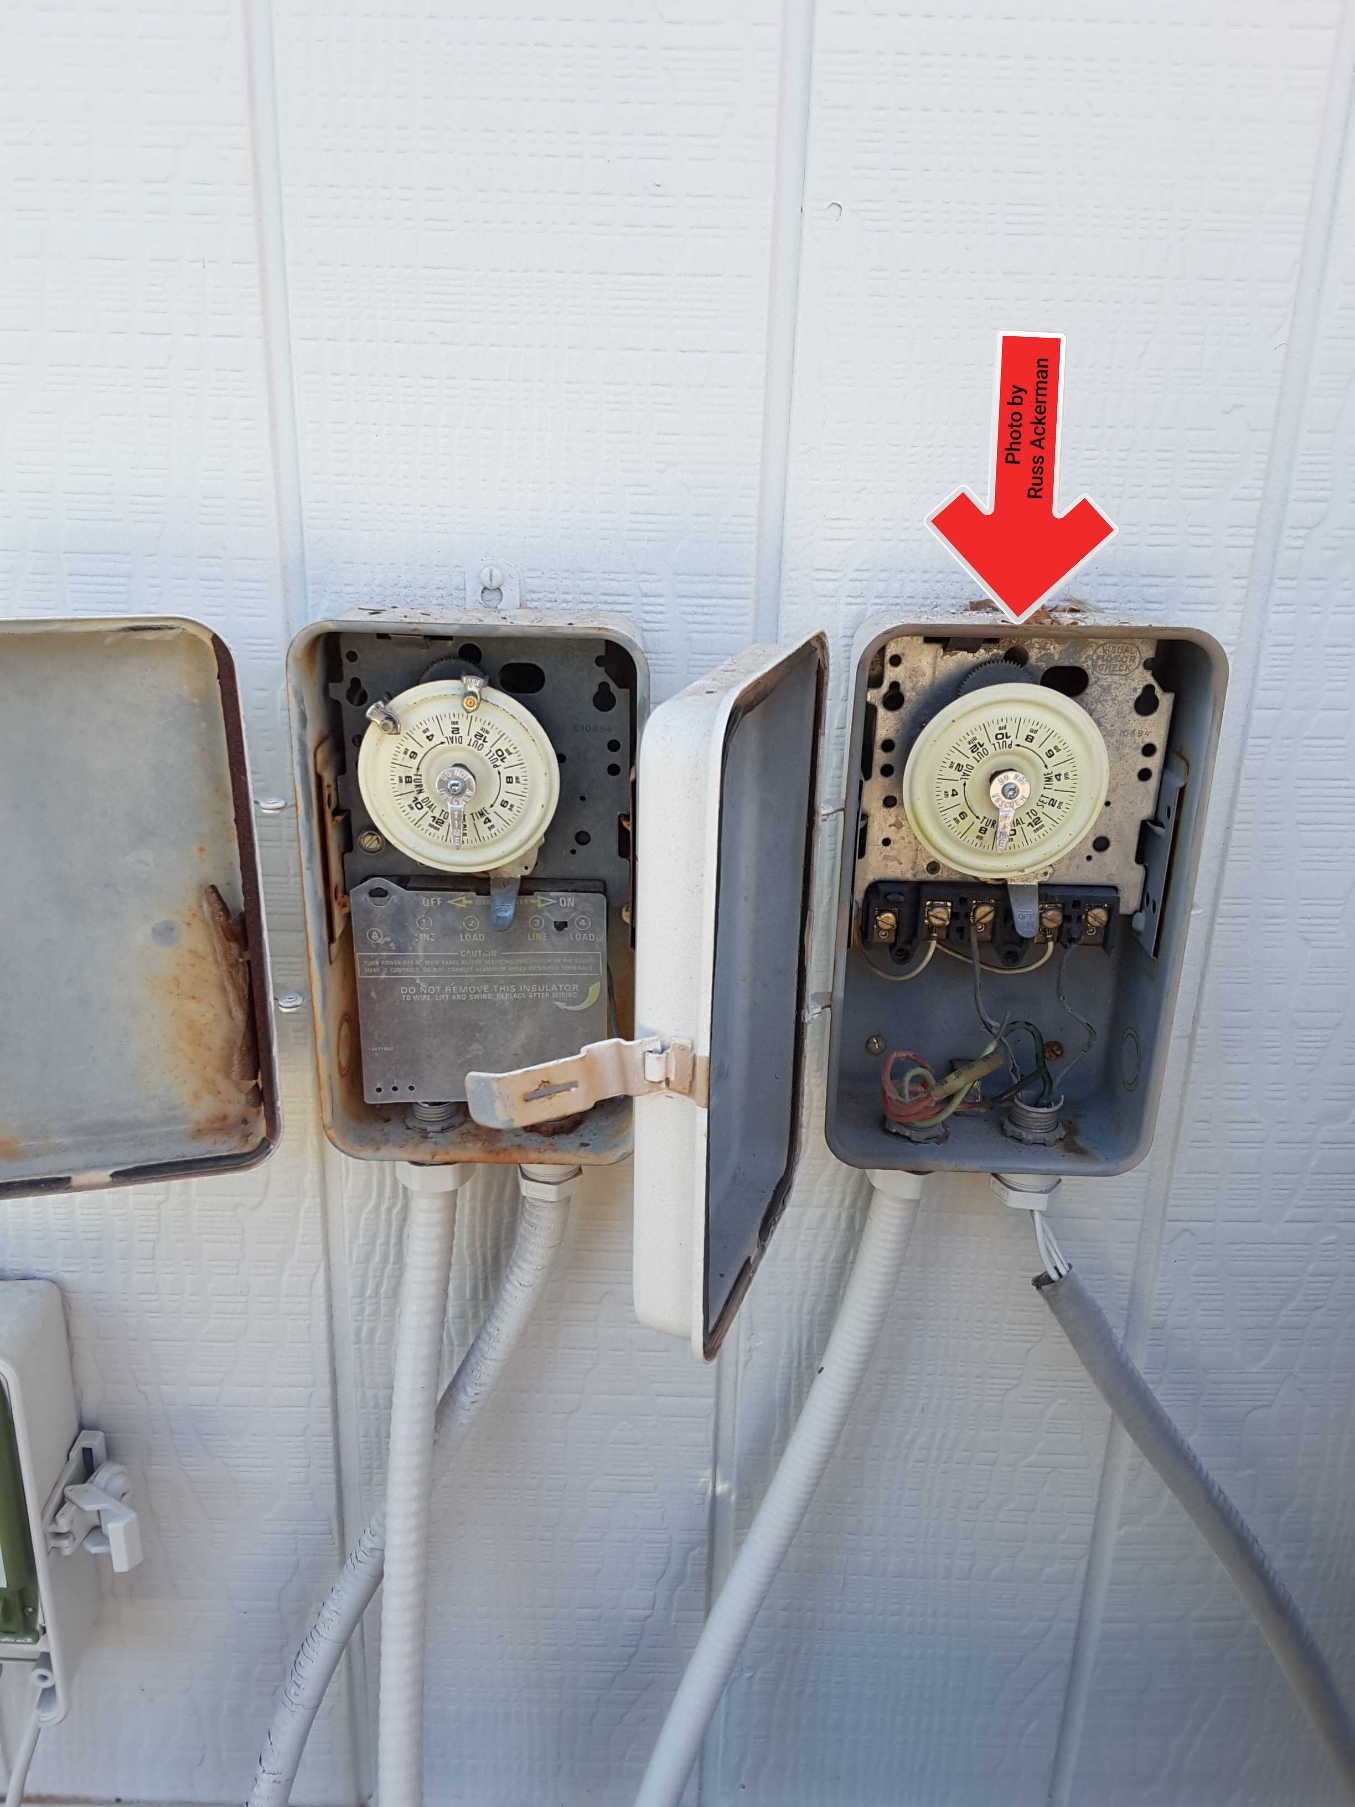 An abandoned pool timer still connected with exposed lives wires. This lazy incomplete job has created a significant safety hazard.